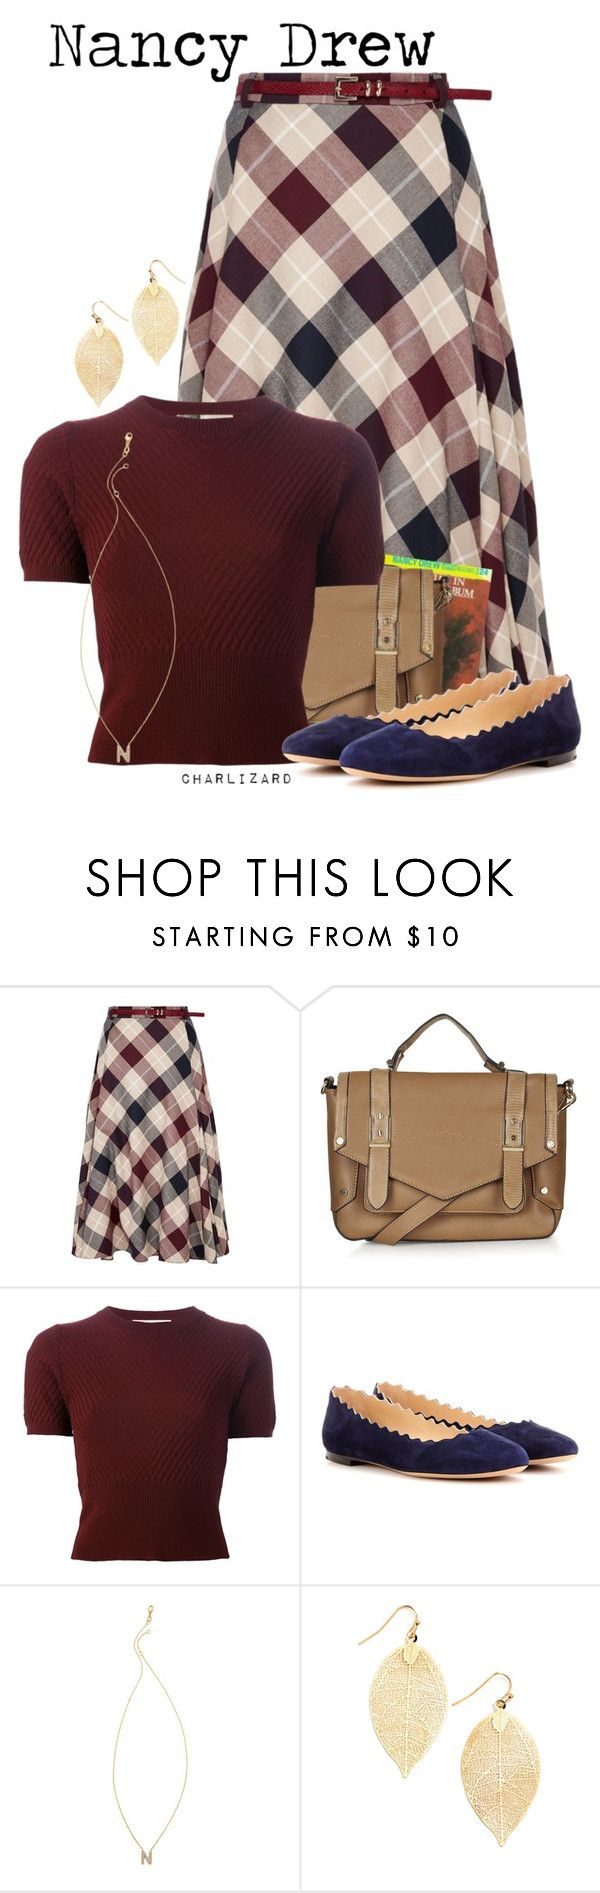 """""""Nancy Drew"""" by charlizard ❤ liked on Polyvore featuring CC, Topshop, Marni, Chloé, Sarah Chloe, vintage, women's clothing, women, female and woman"""